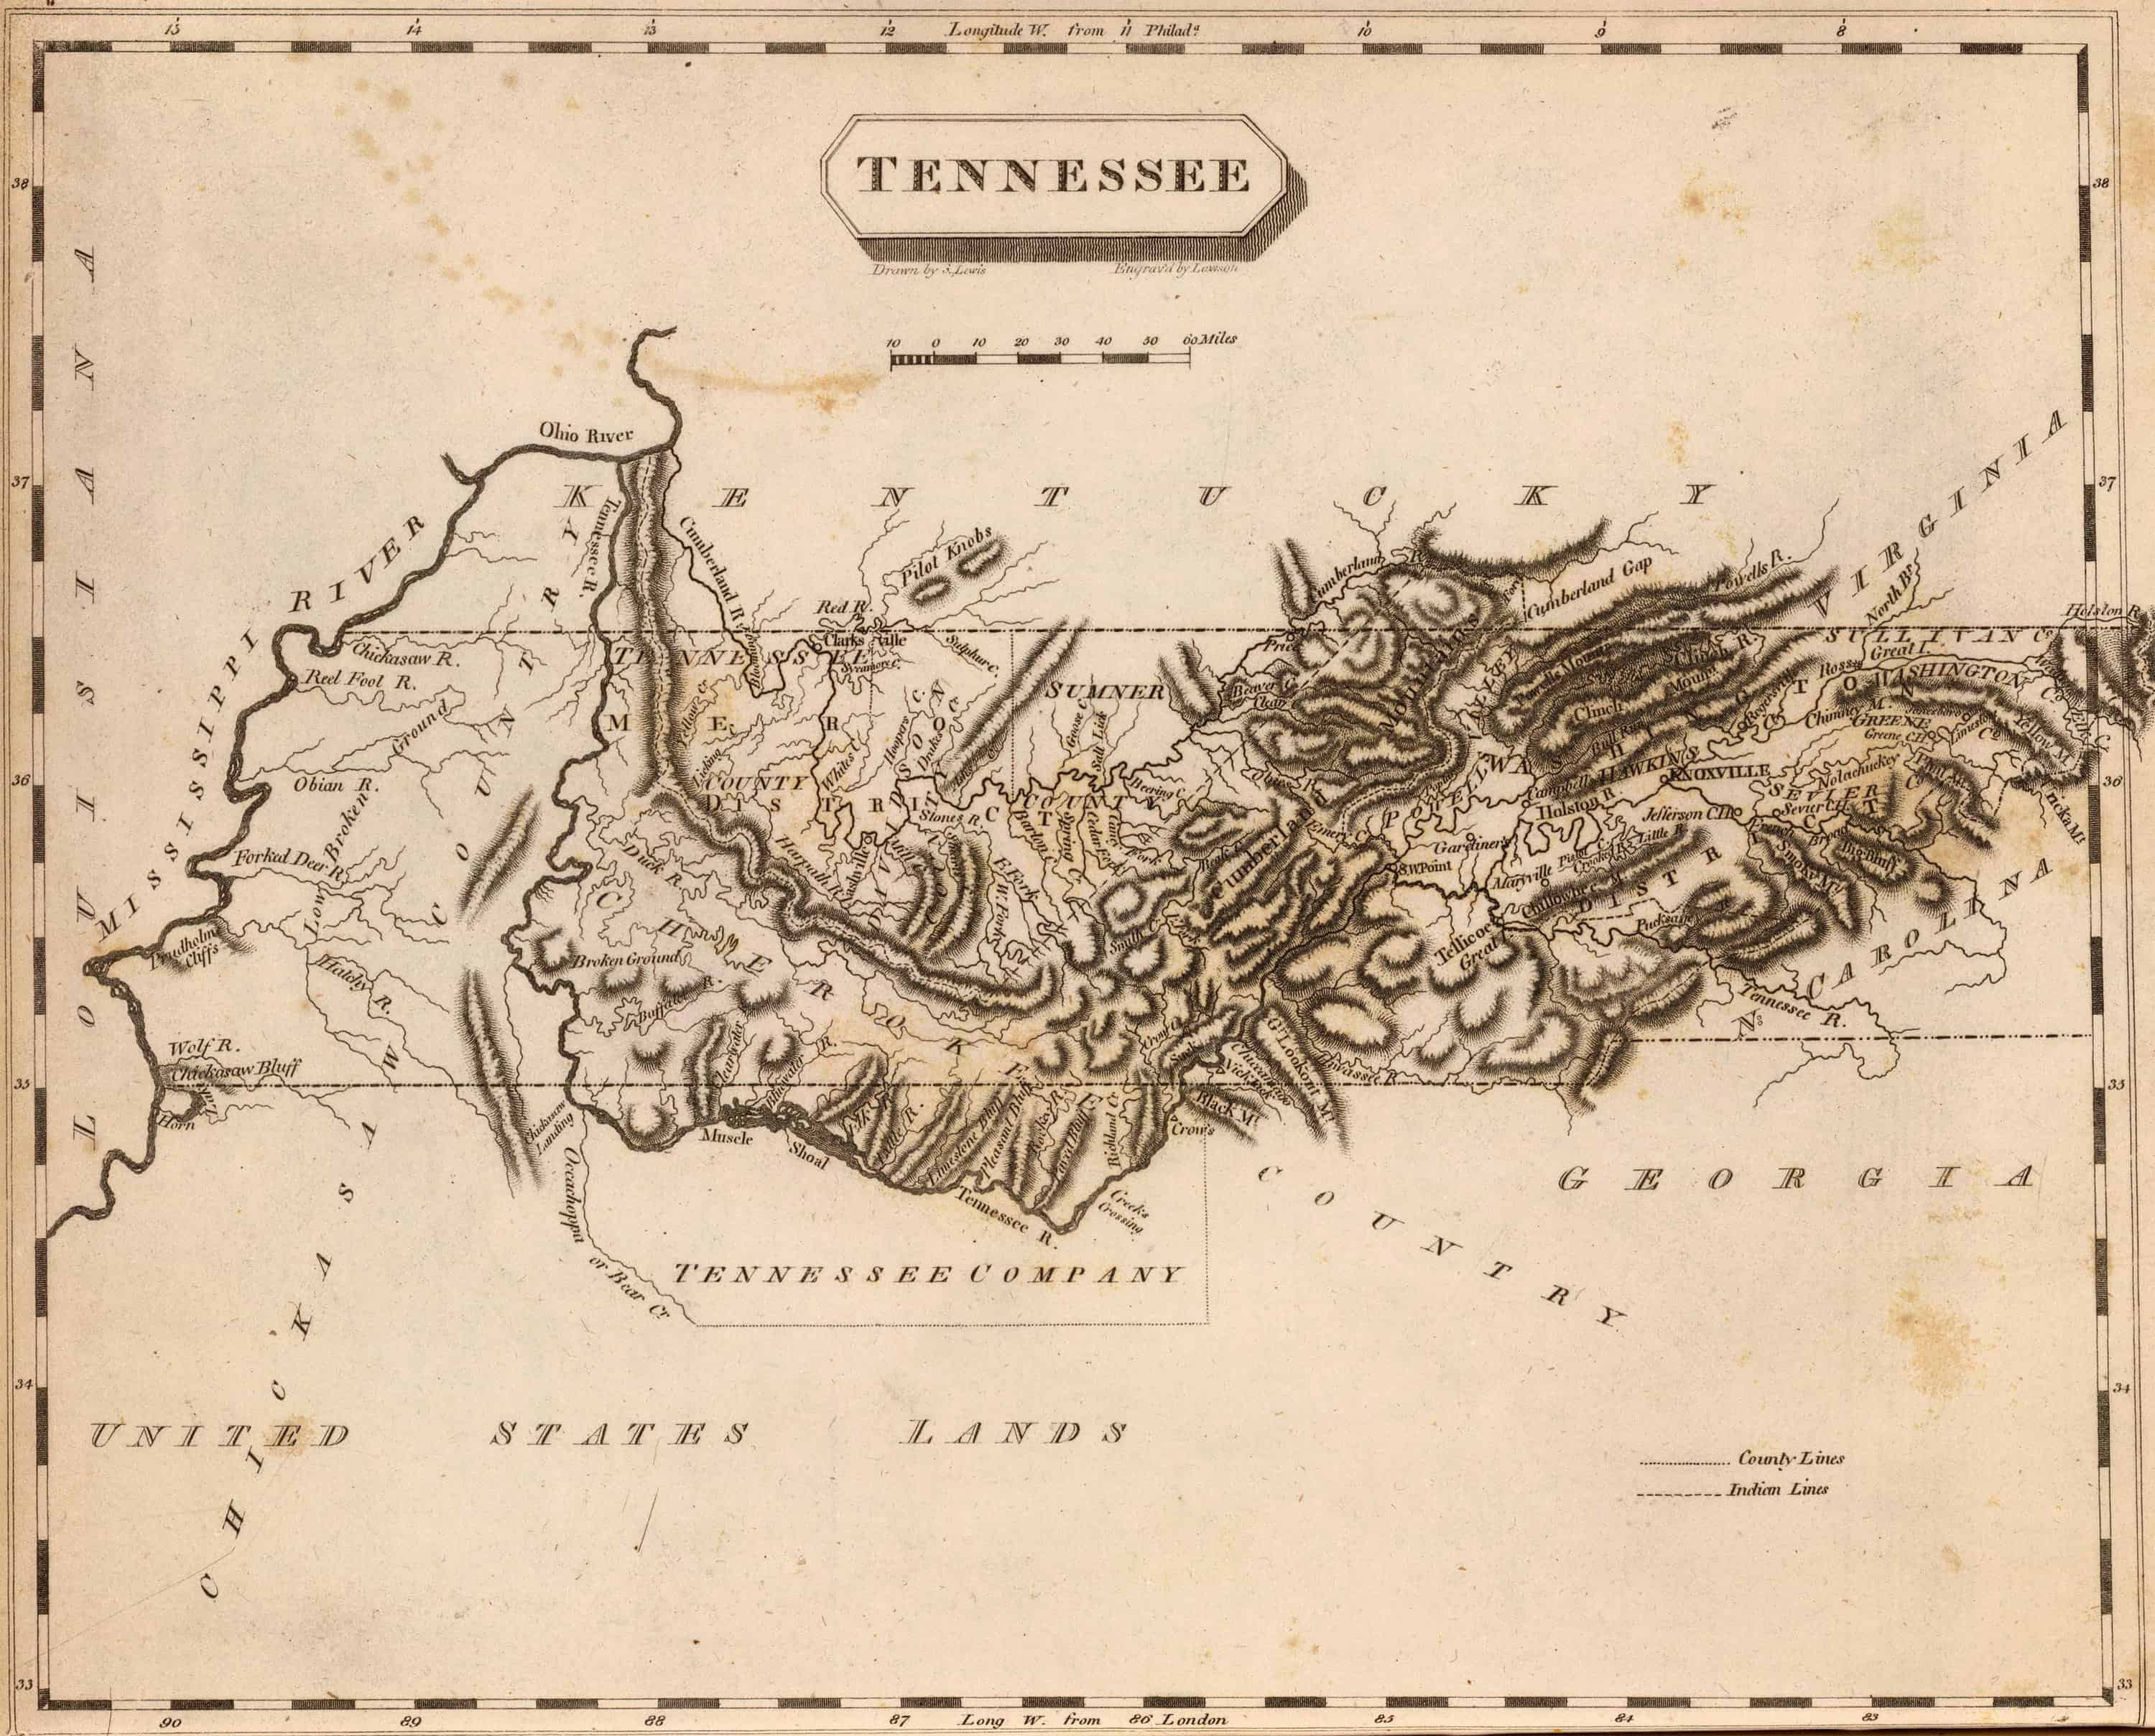 Old Historical City, County and State Maps of Tennessee